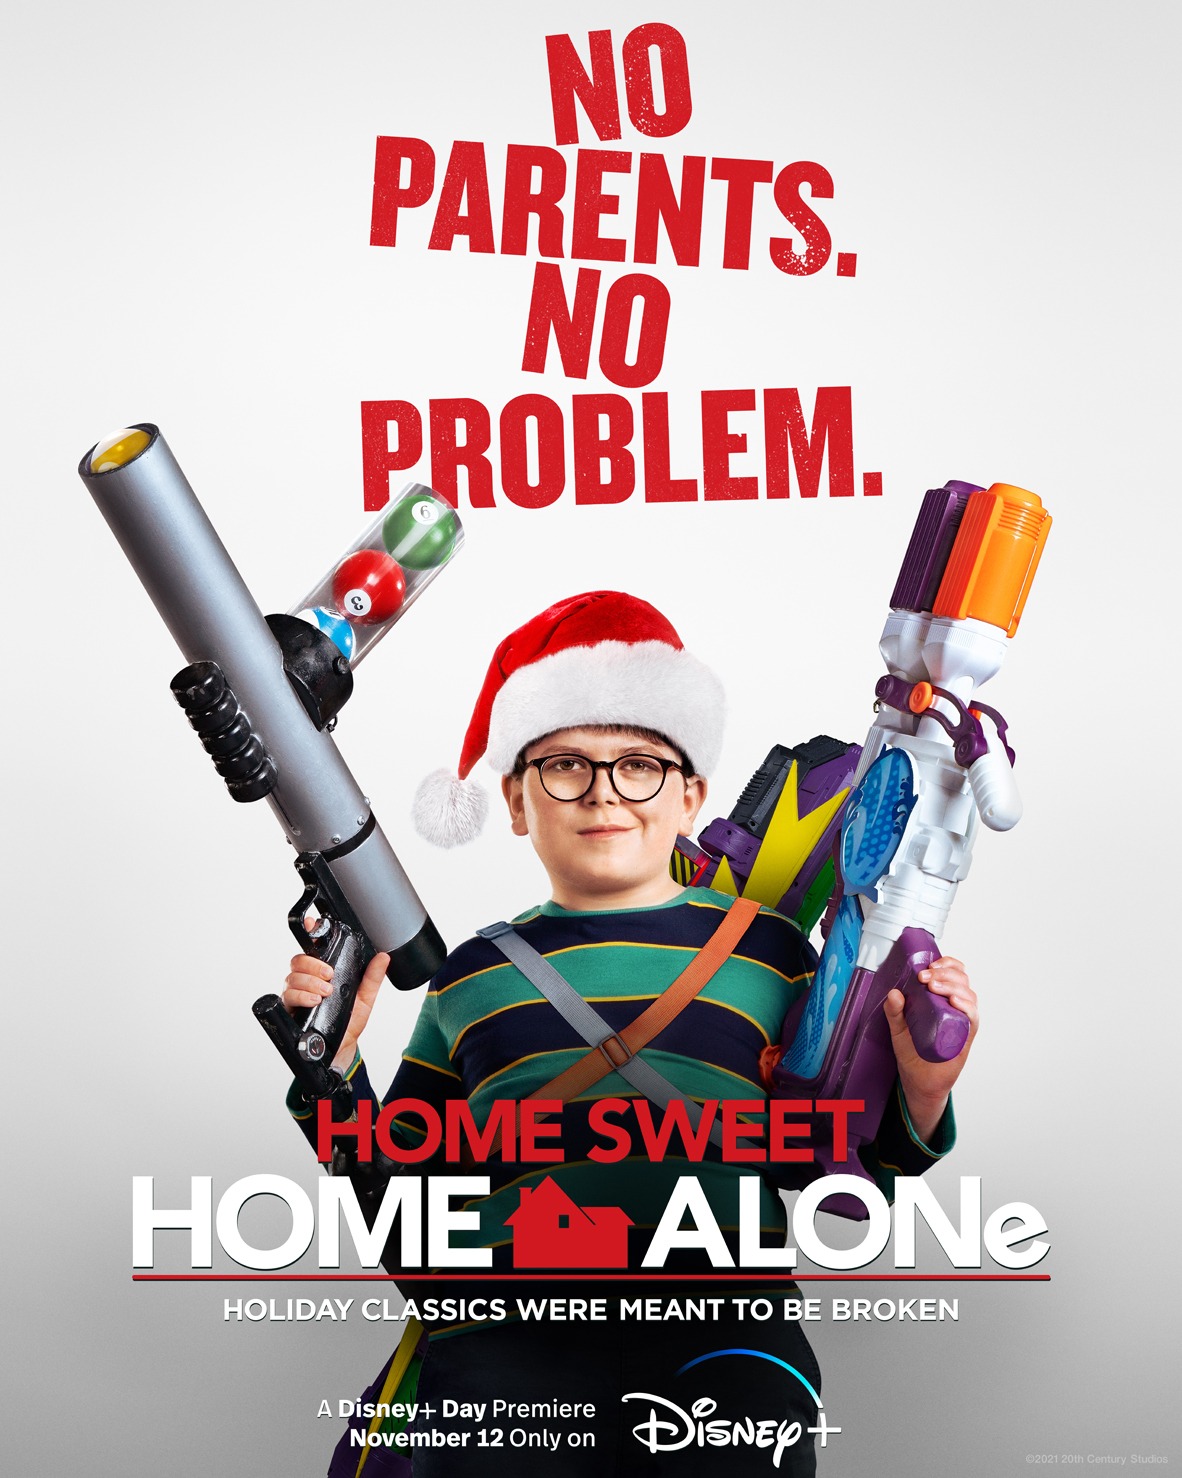 Disney+ Releases First Trailer of 'Home Alone' Reboot 'Home Sweet Home Alone'  - October 12th, 2021